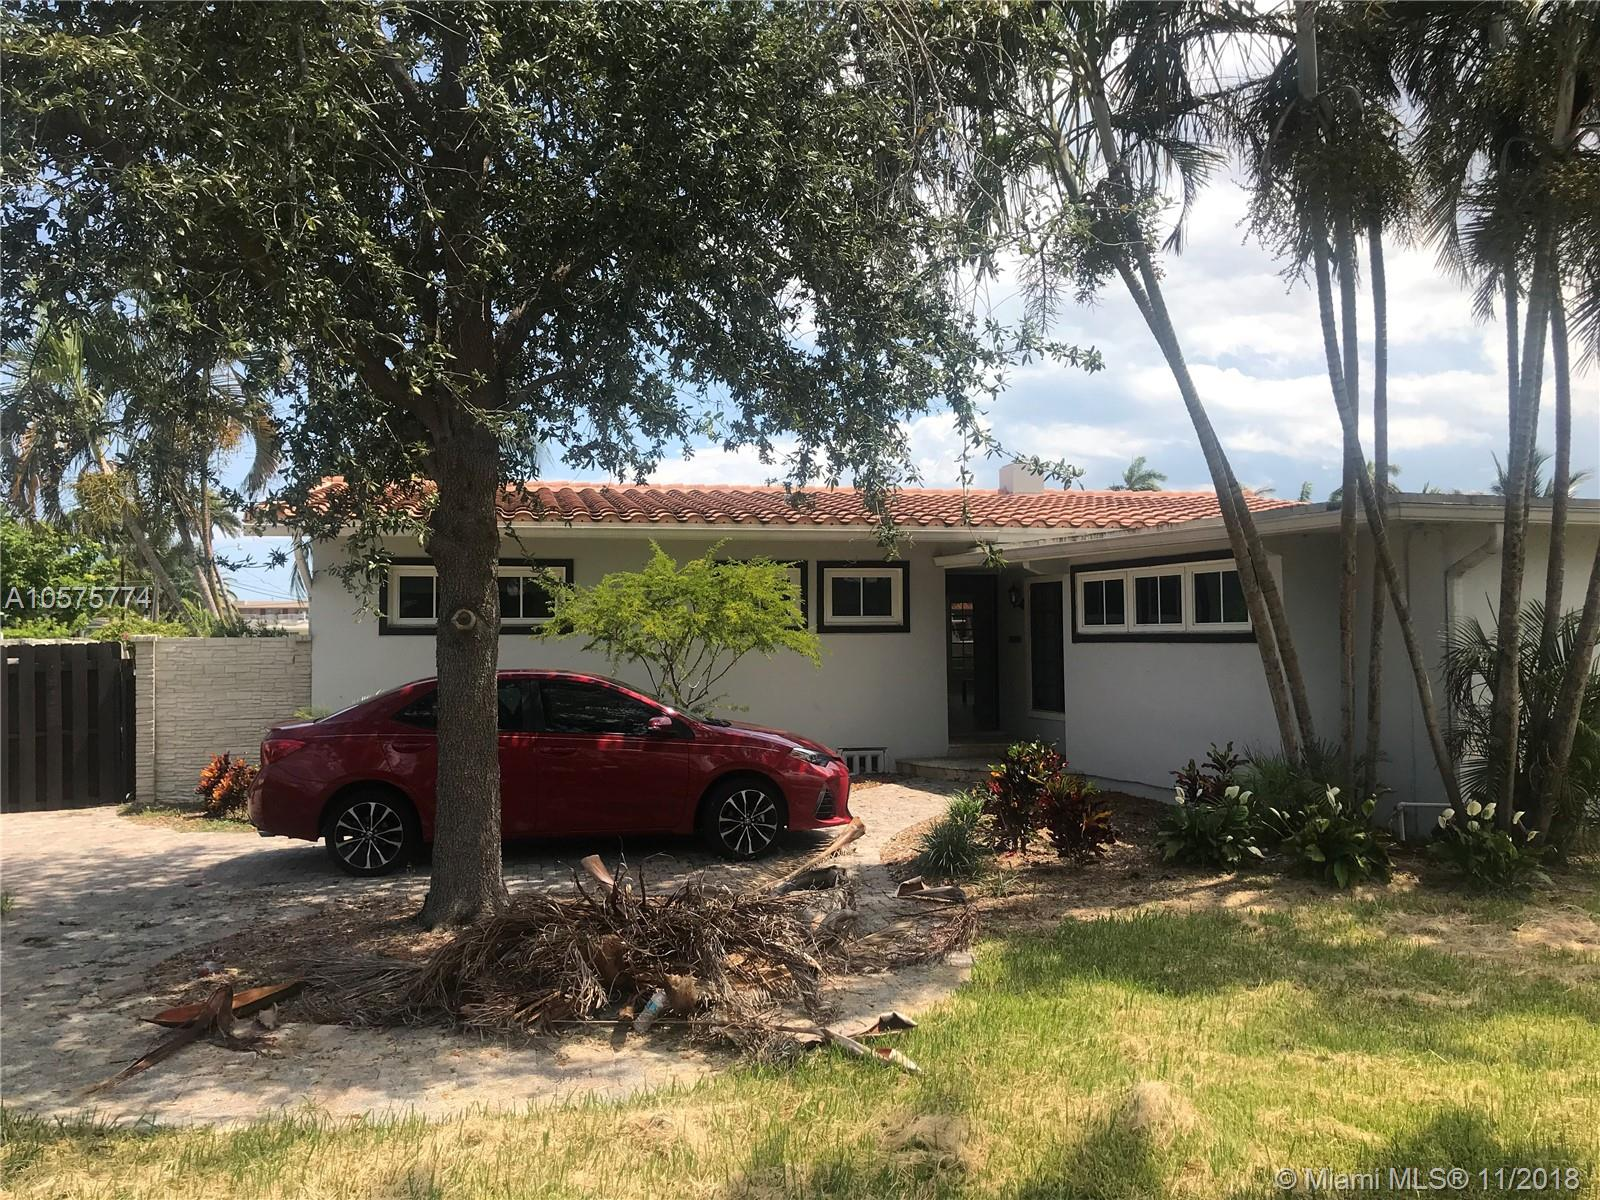 Nice 2 bedroom 3 bathroom home in Beautiful Lauderdale Harbor. Property has direct ocean access with no fixed bridges. On Lockbox Call for showings